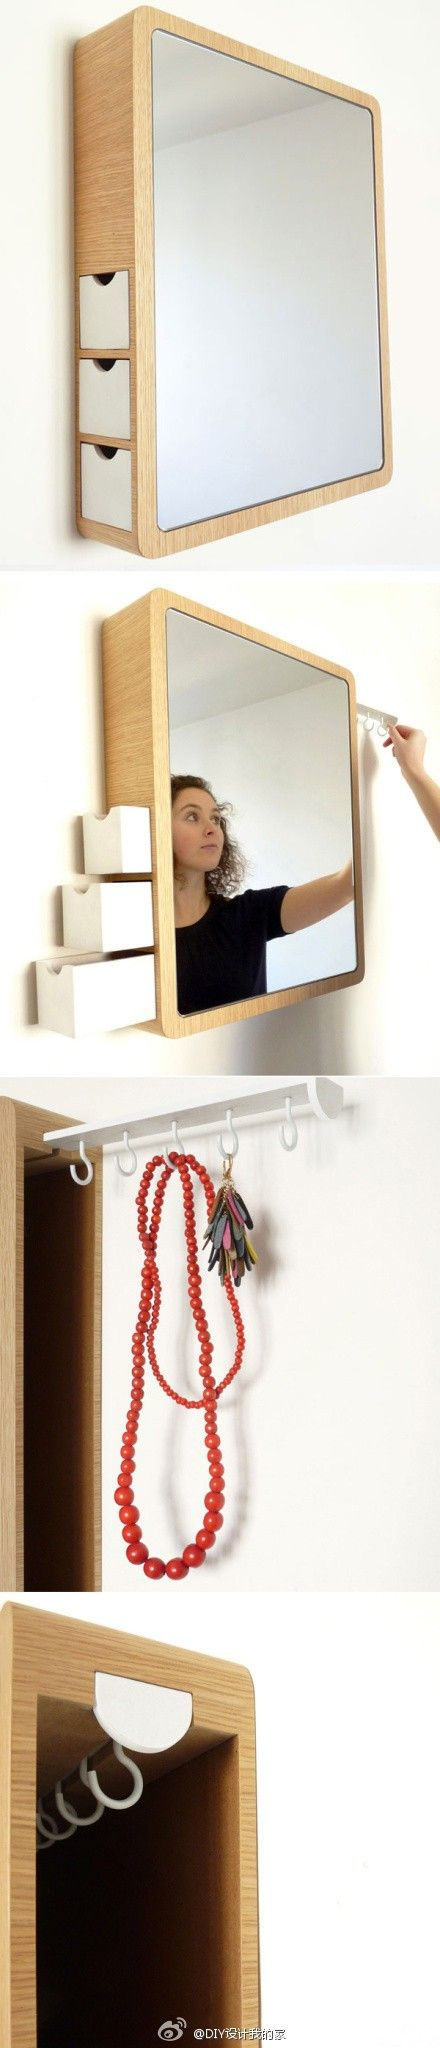 Best 25 bathroom mirror cabinet ideas on pinterest - Bathroom mirror with hidden storage ...